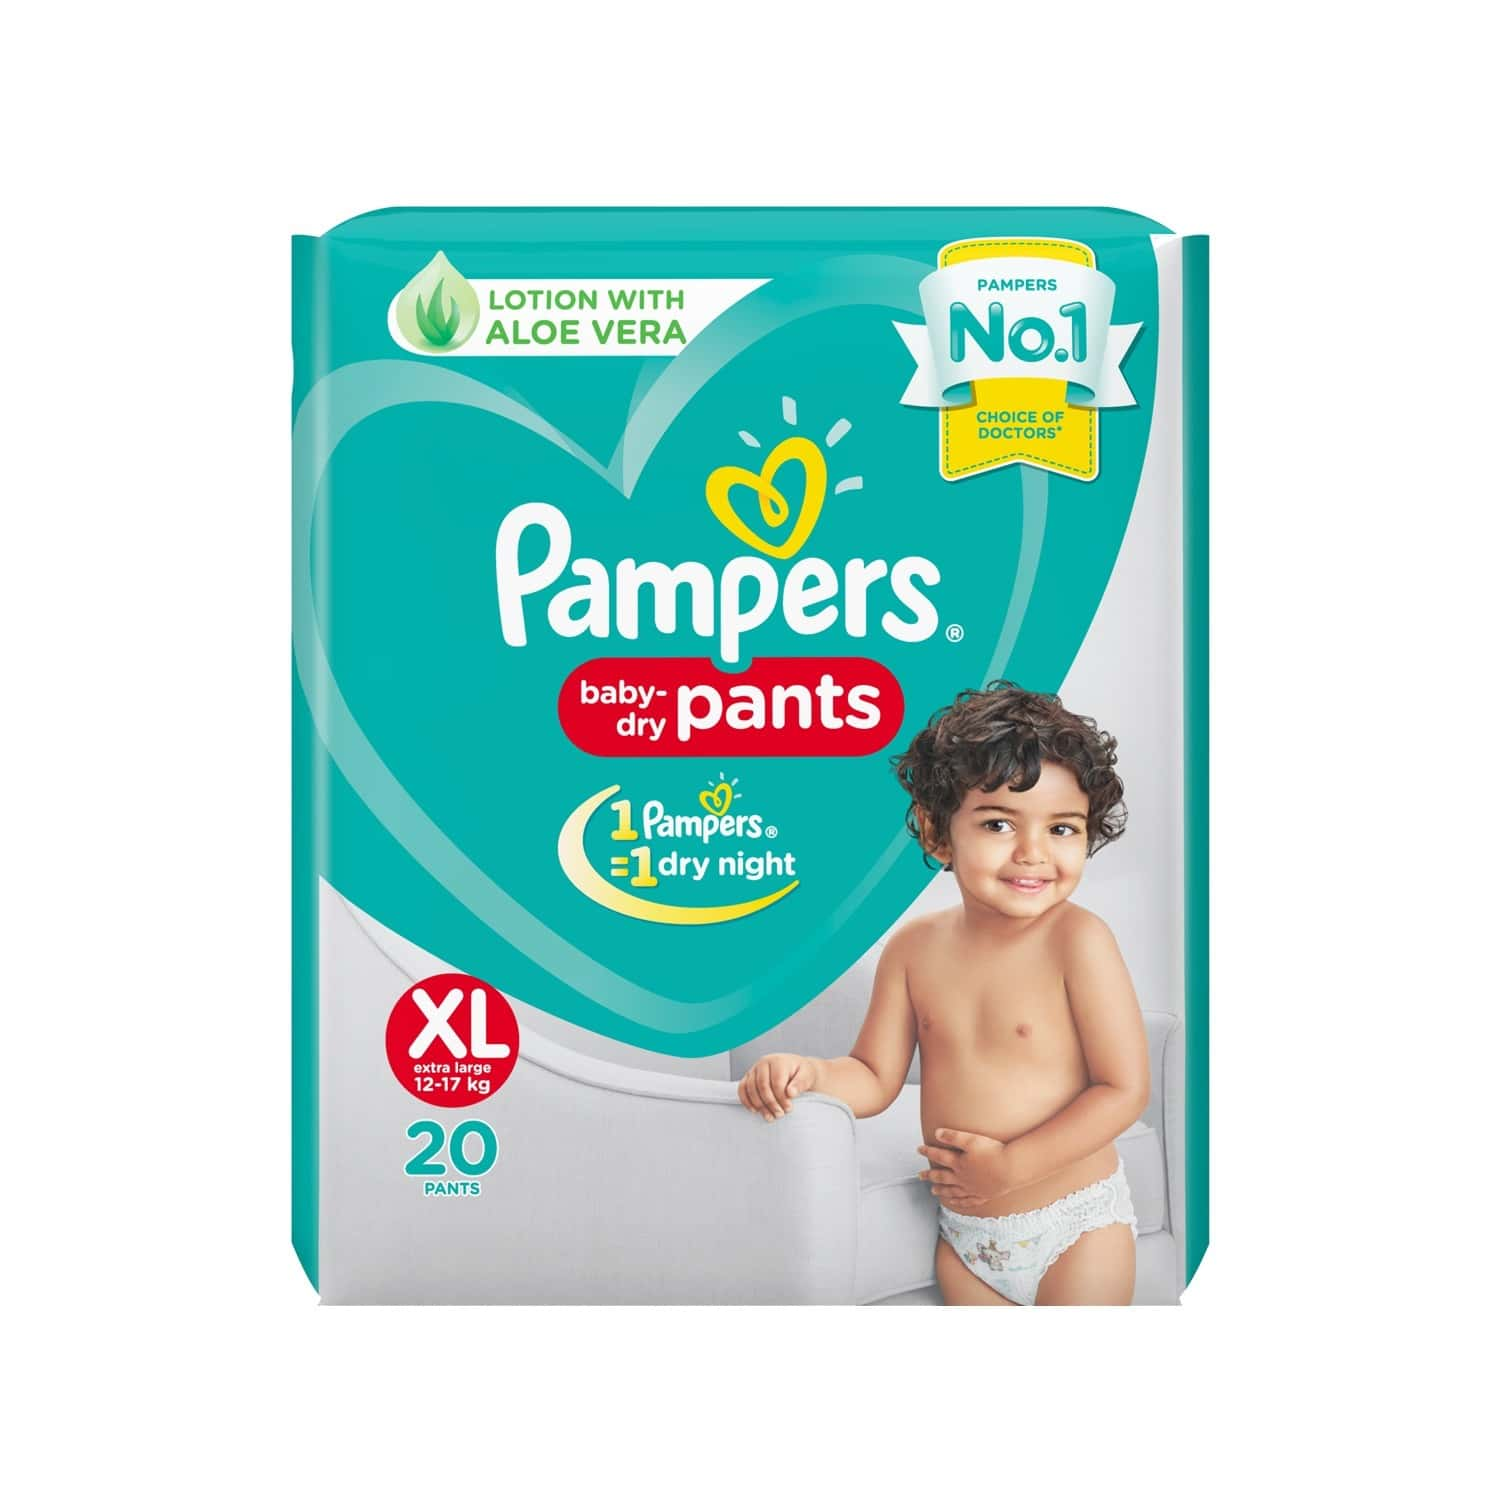 Pampers New Diaper Size Xl Packet Of 20